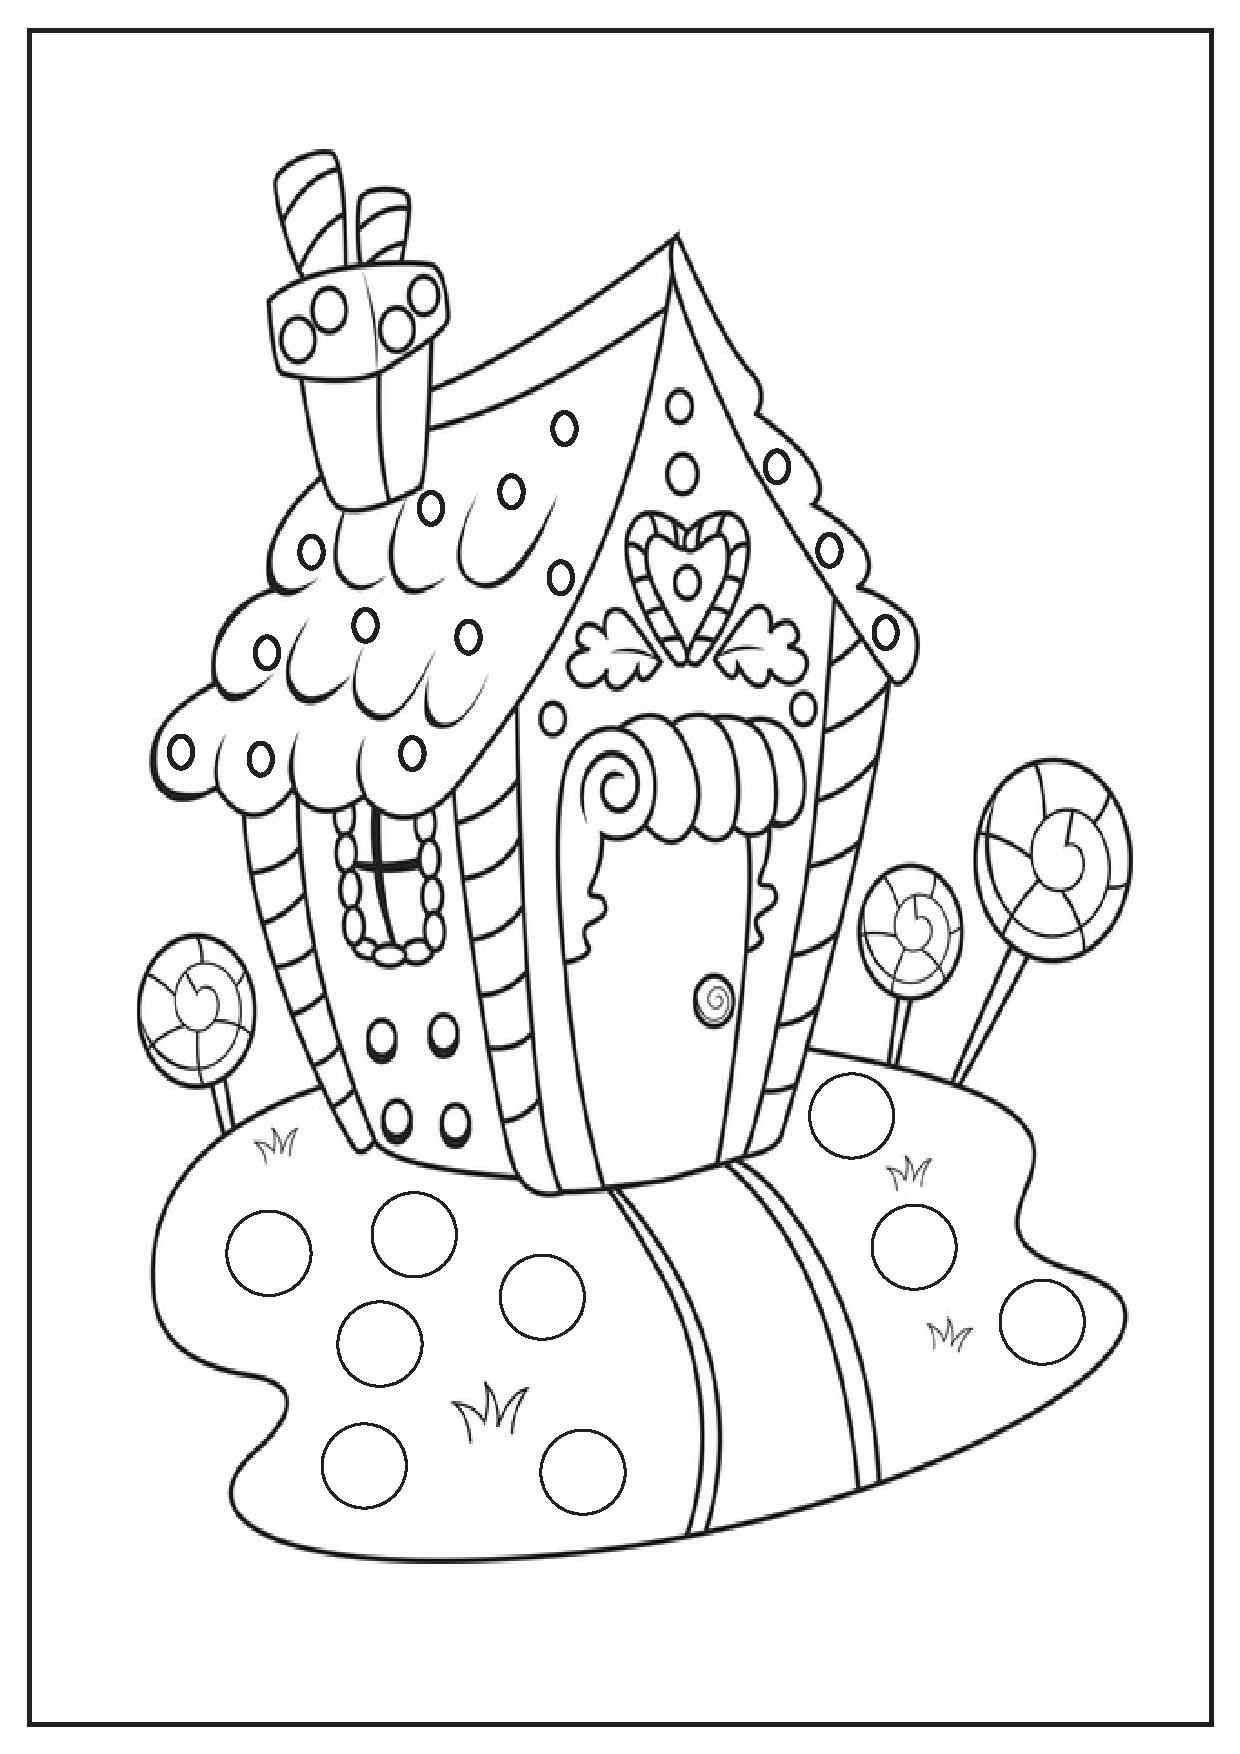 Christmas Colouring Pages For Preschoolers With Free Coloring